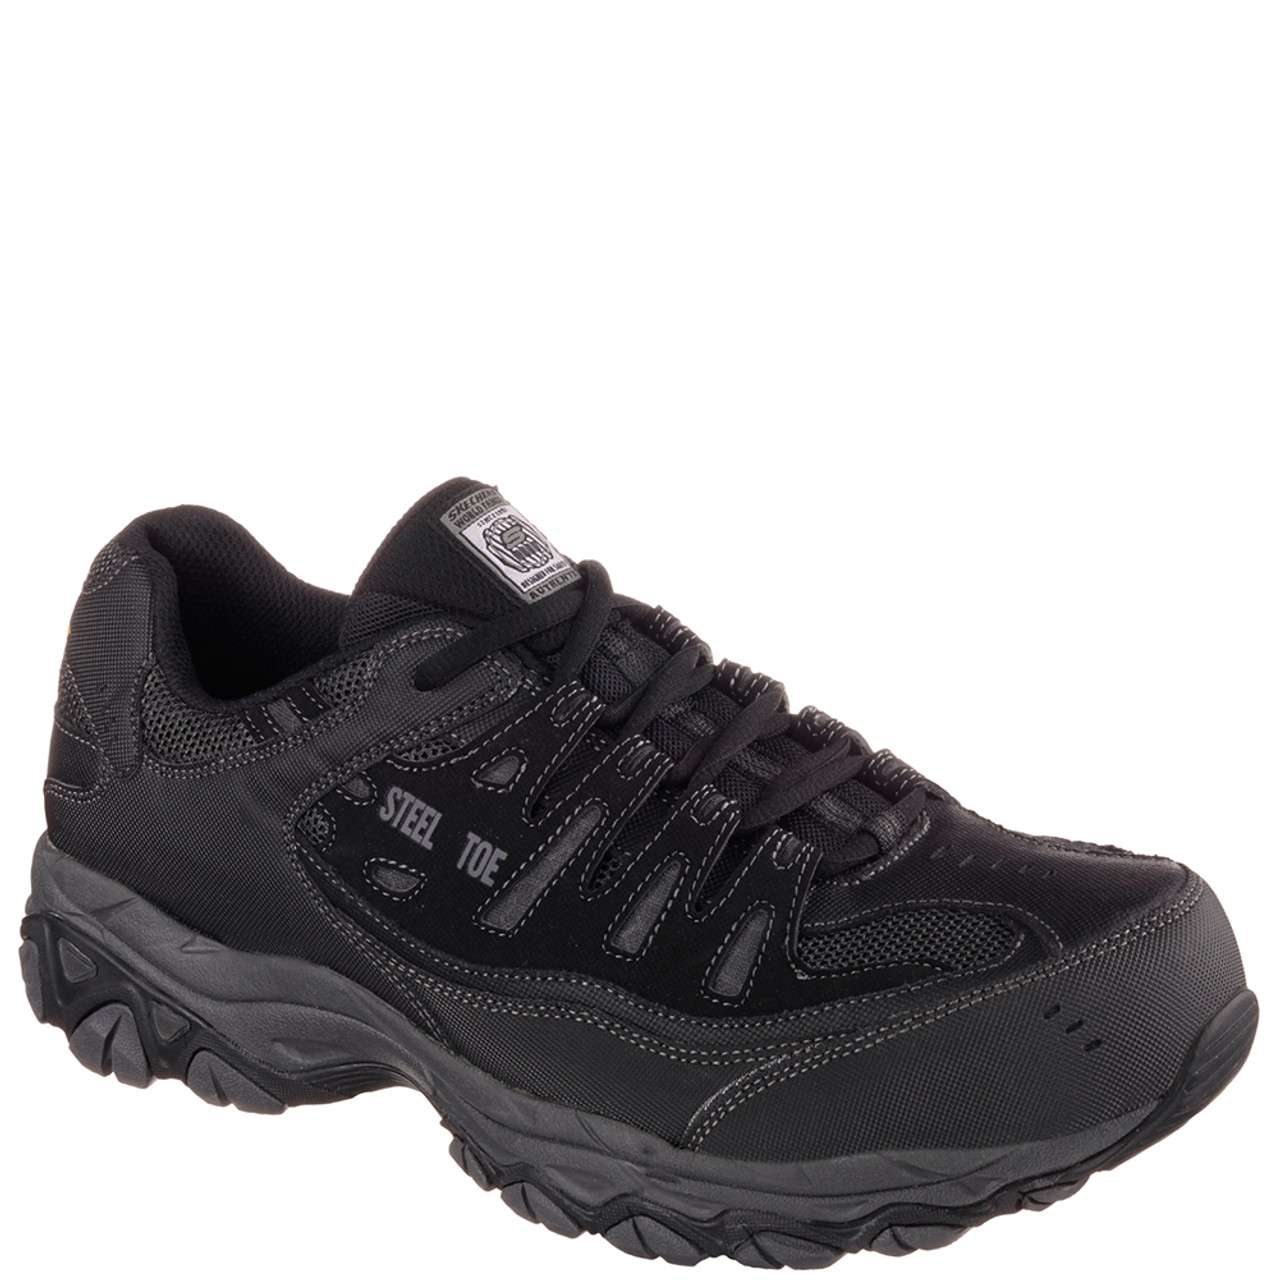 Skechers 77055 CANKTON Athletic Steel Toe Work Shoes